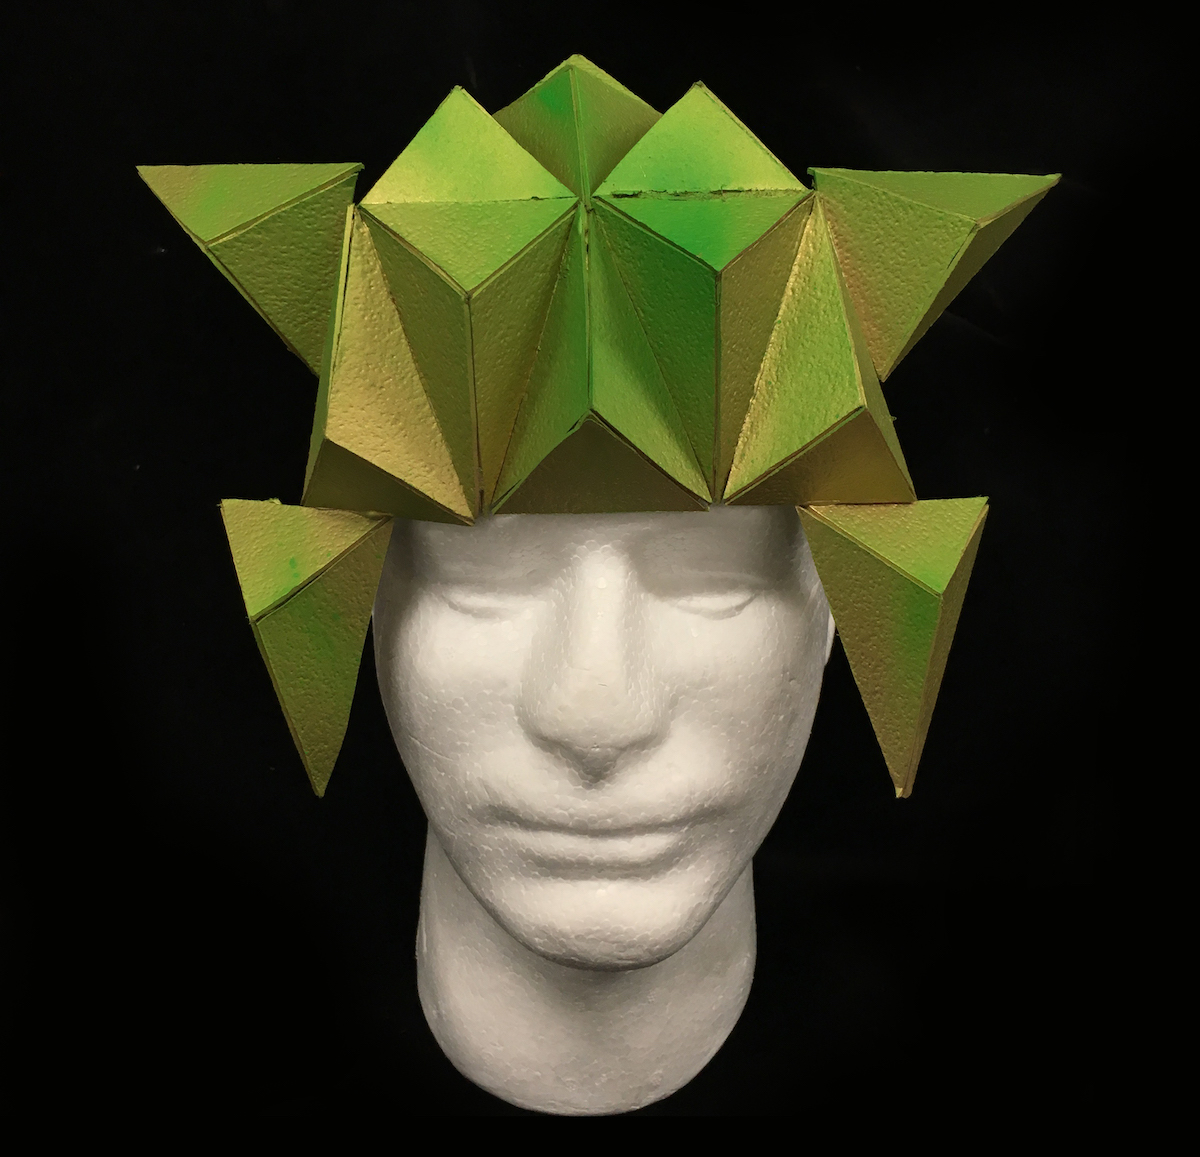 Artwork with headpiece